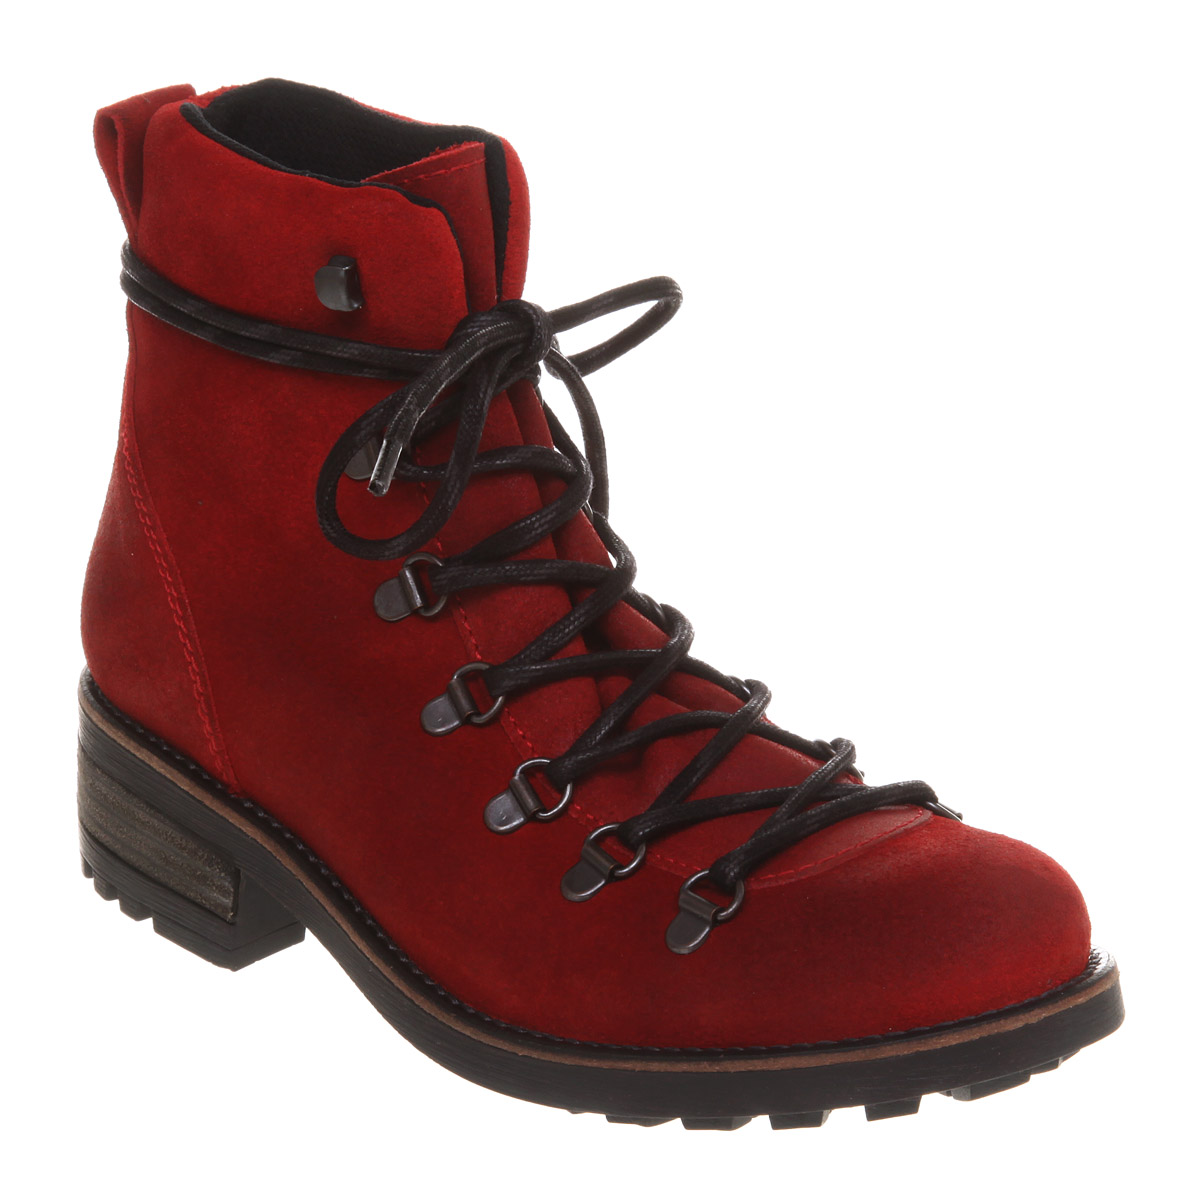 Innovative Fabi - Red Suede Ankle Boots - Red Menu0026#39;s Boots | Italist